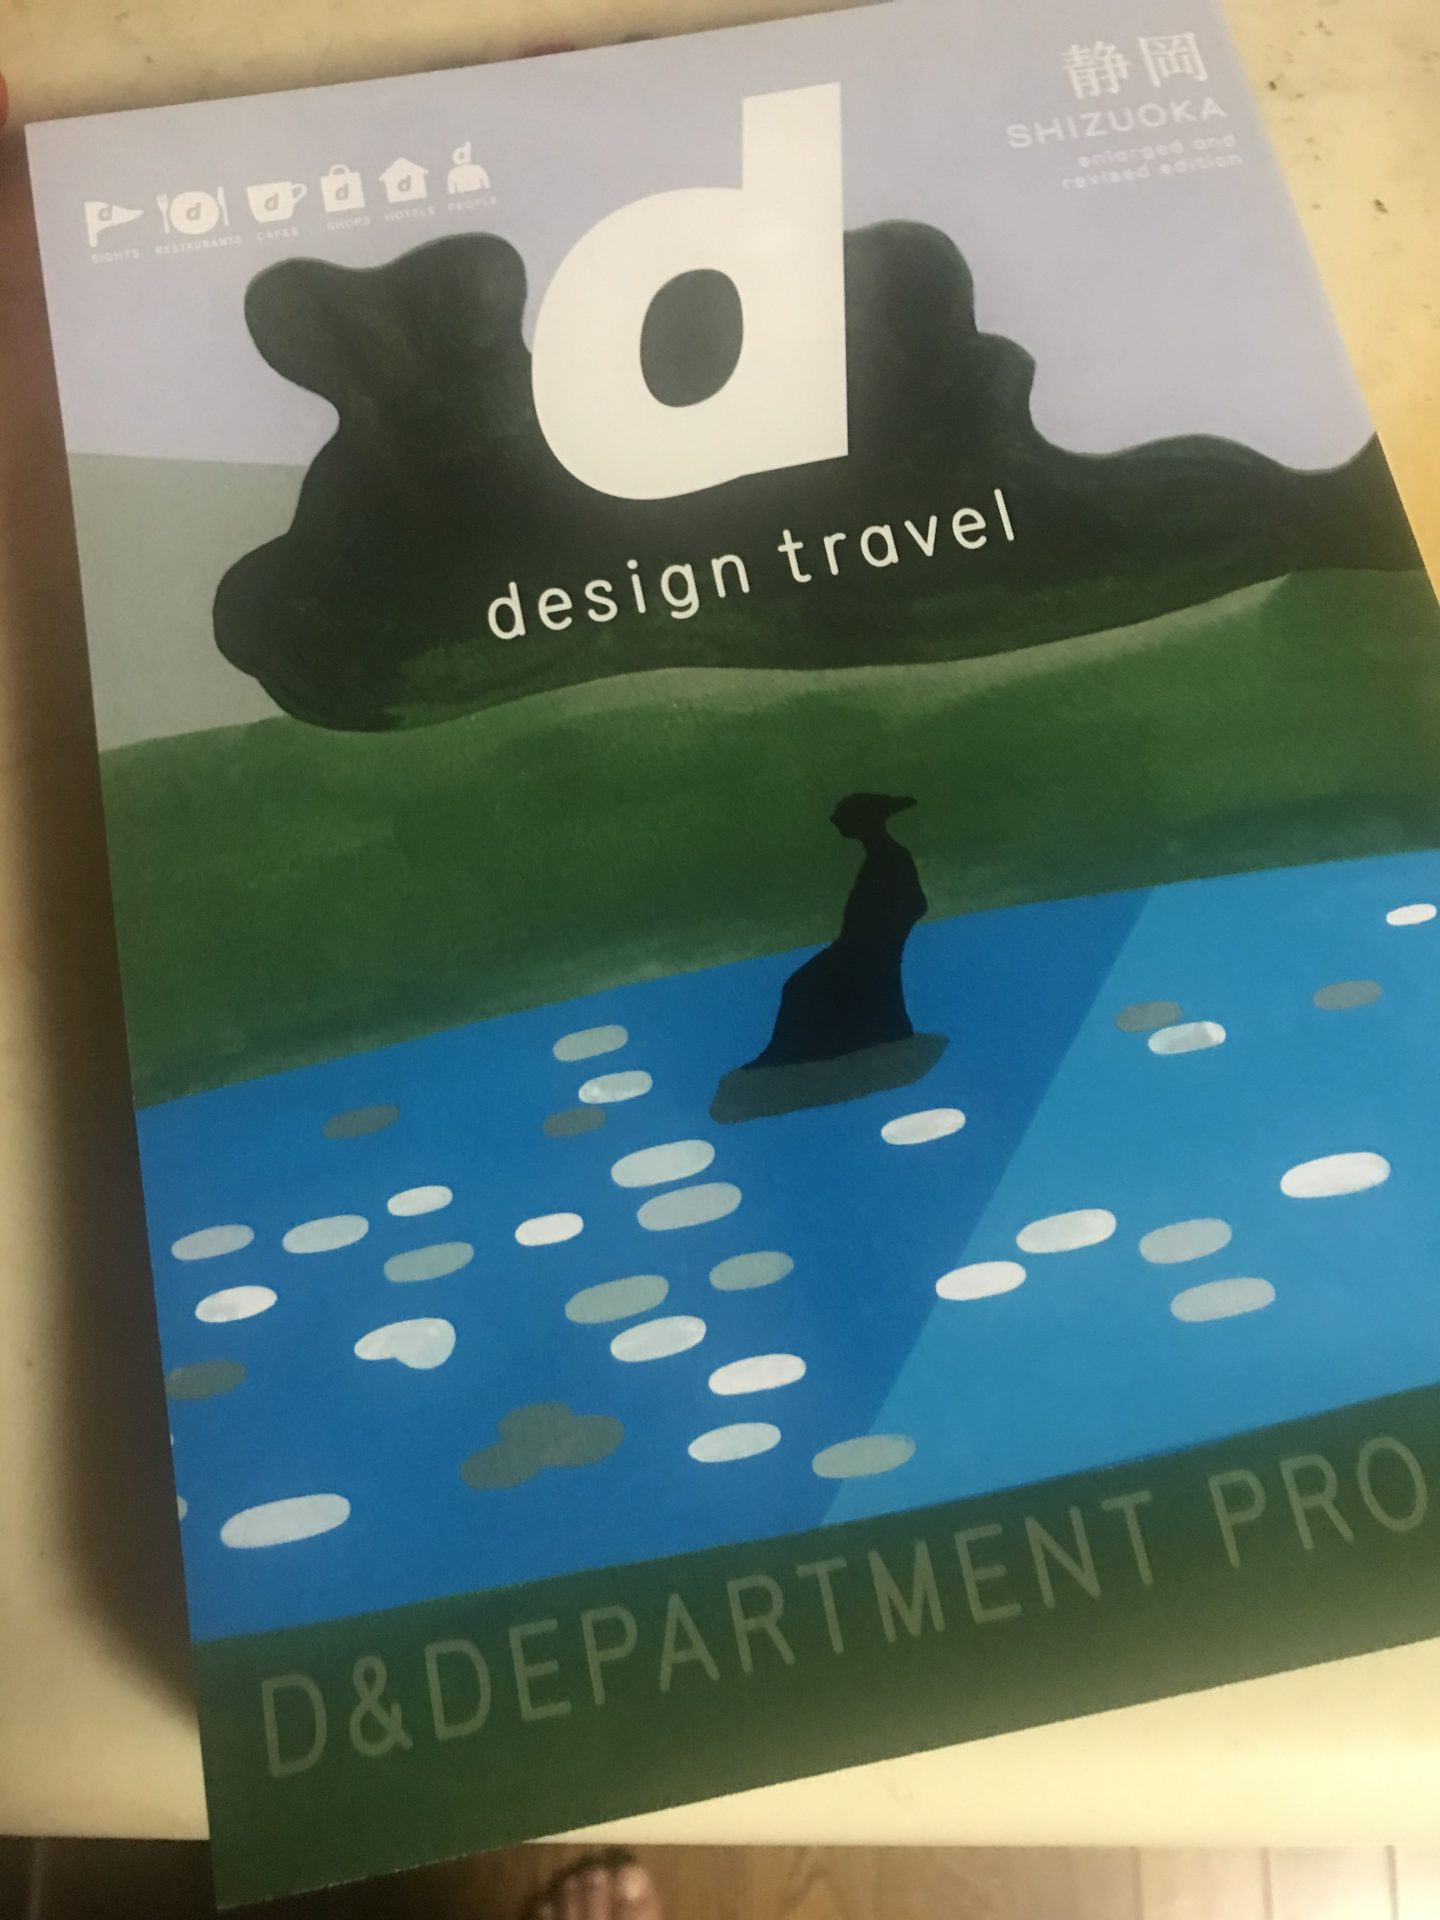 d47 design travel